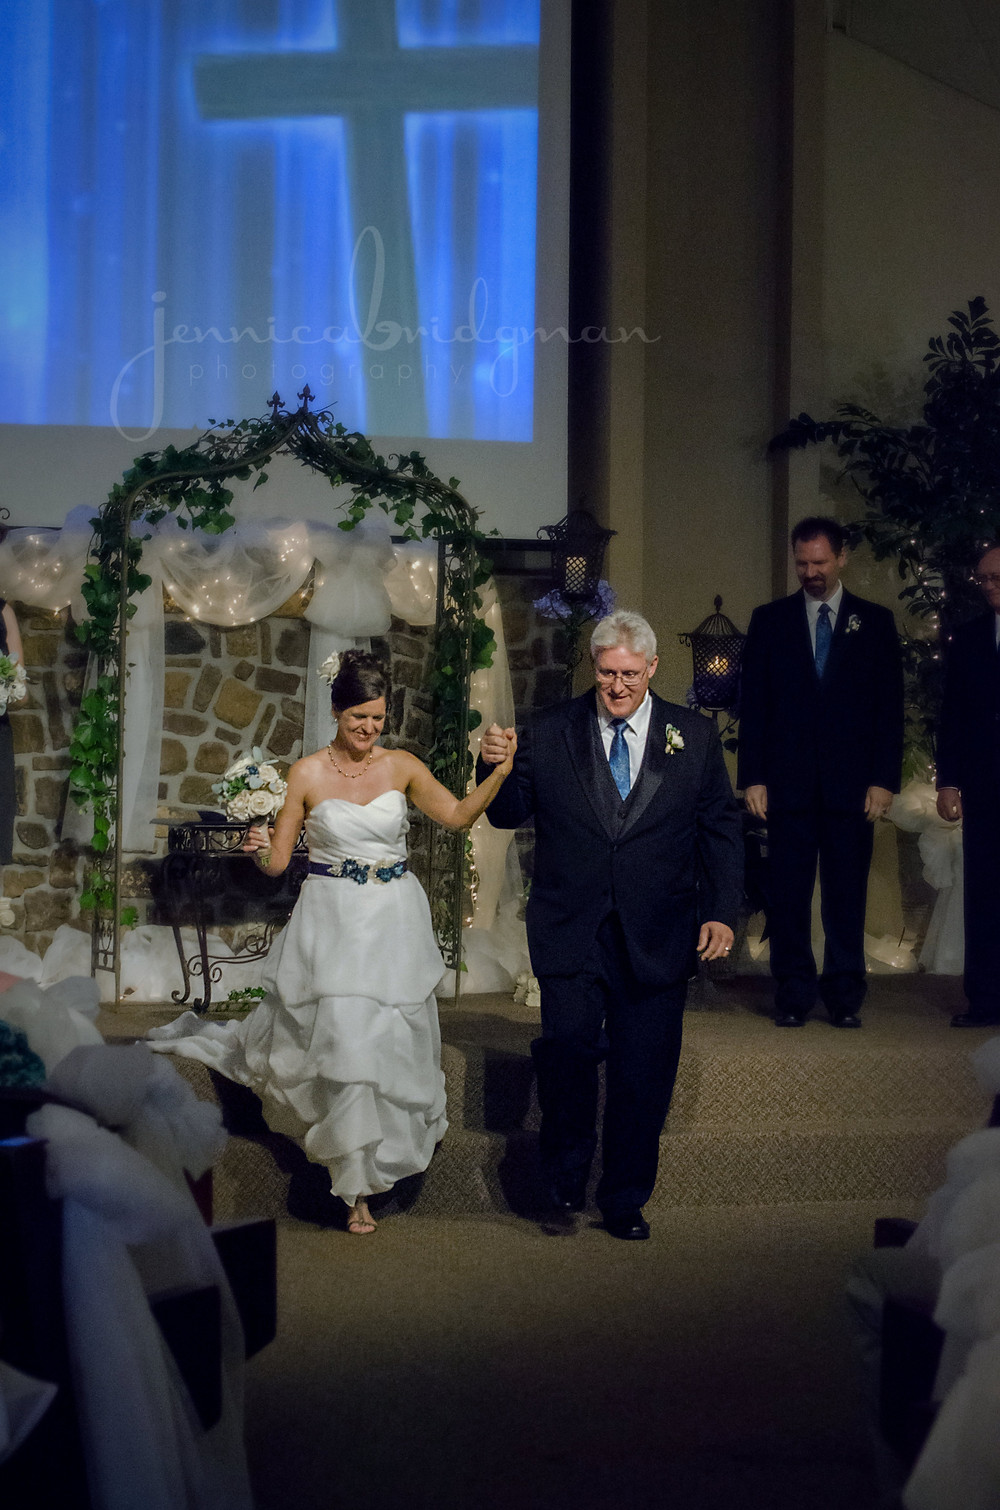 Christy + Ron Married! | Intimate Chapel Wedding | Conway, AR Wedding Photographer